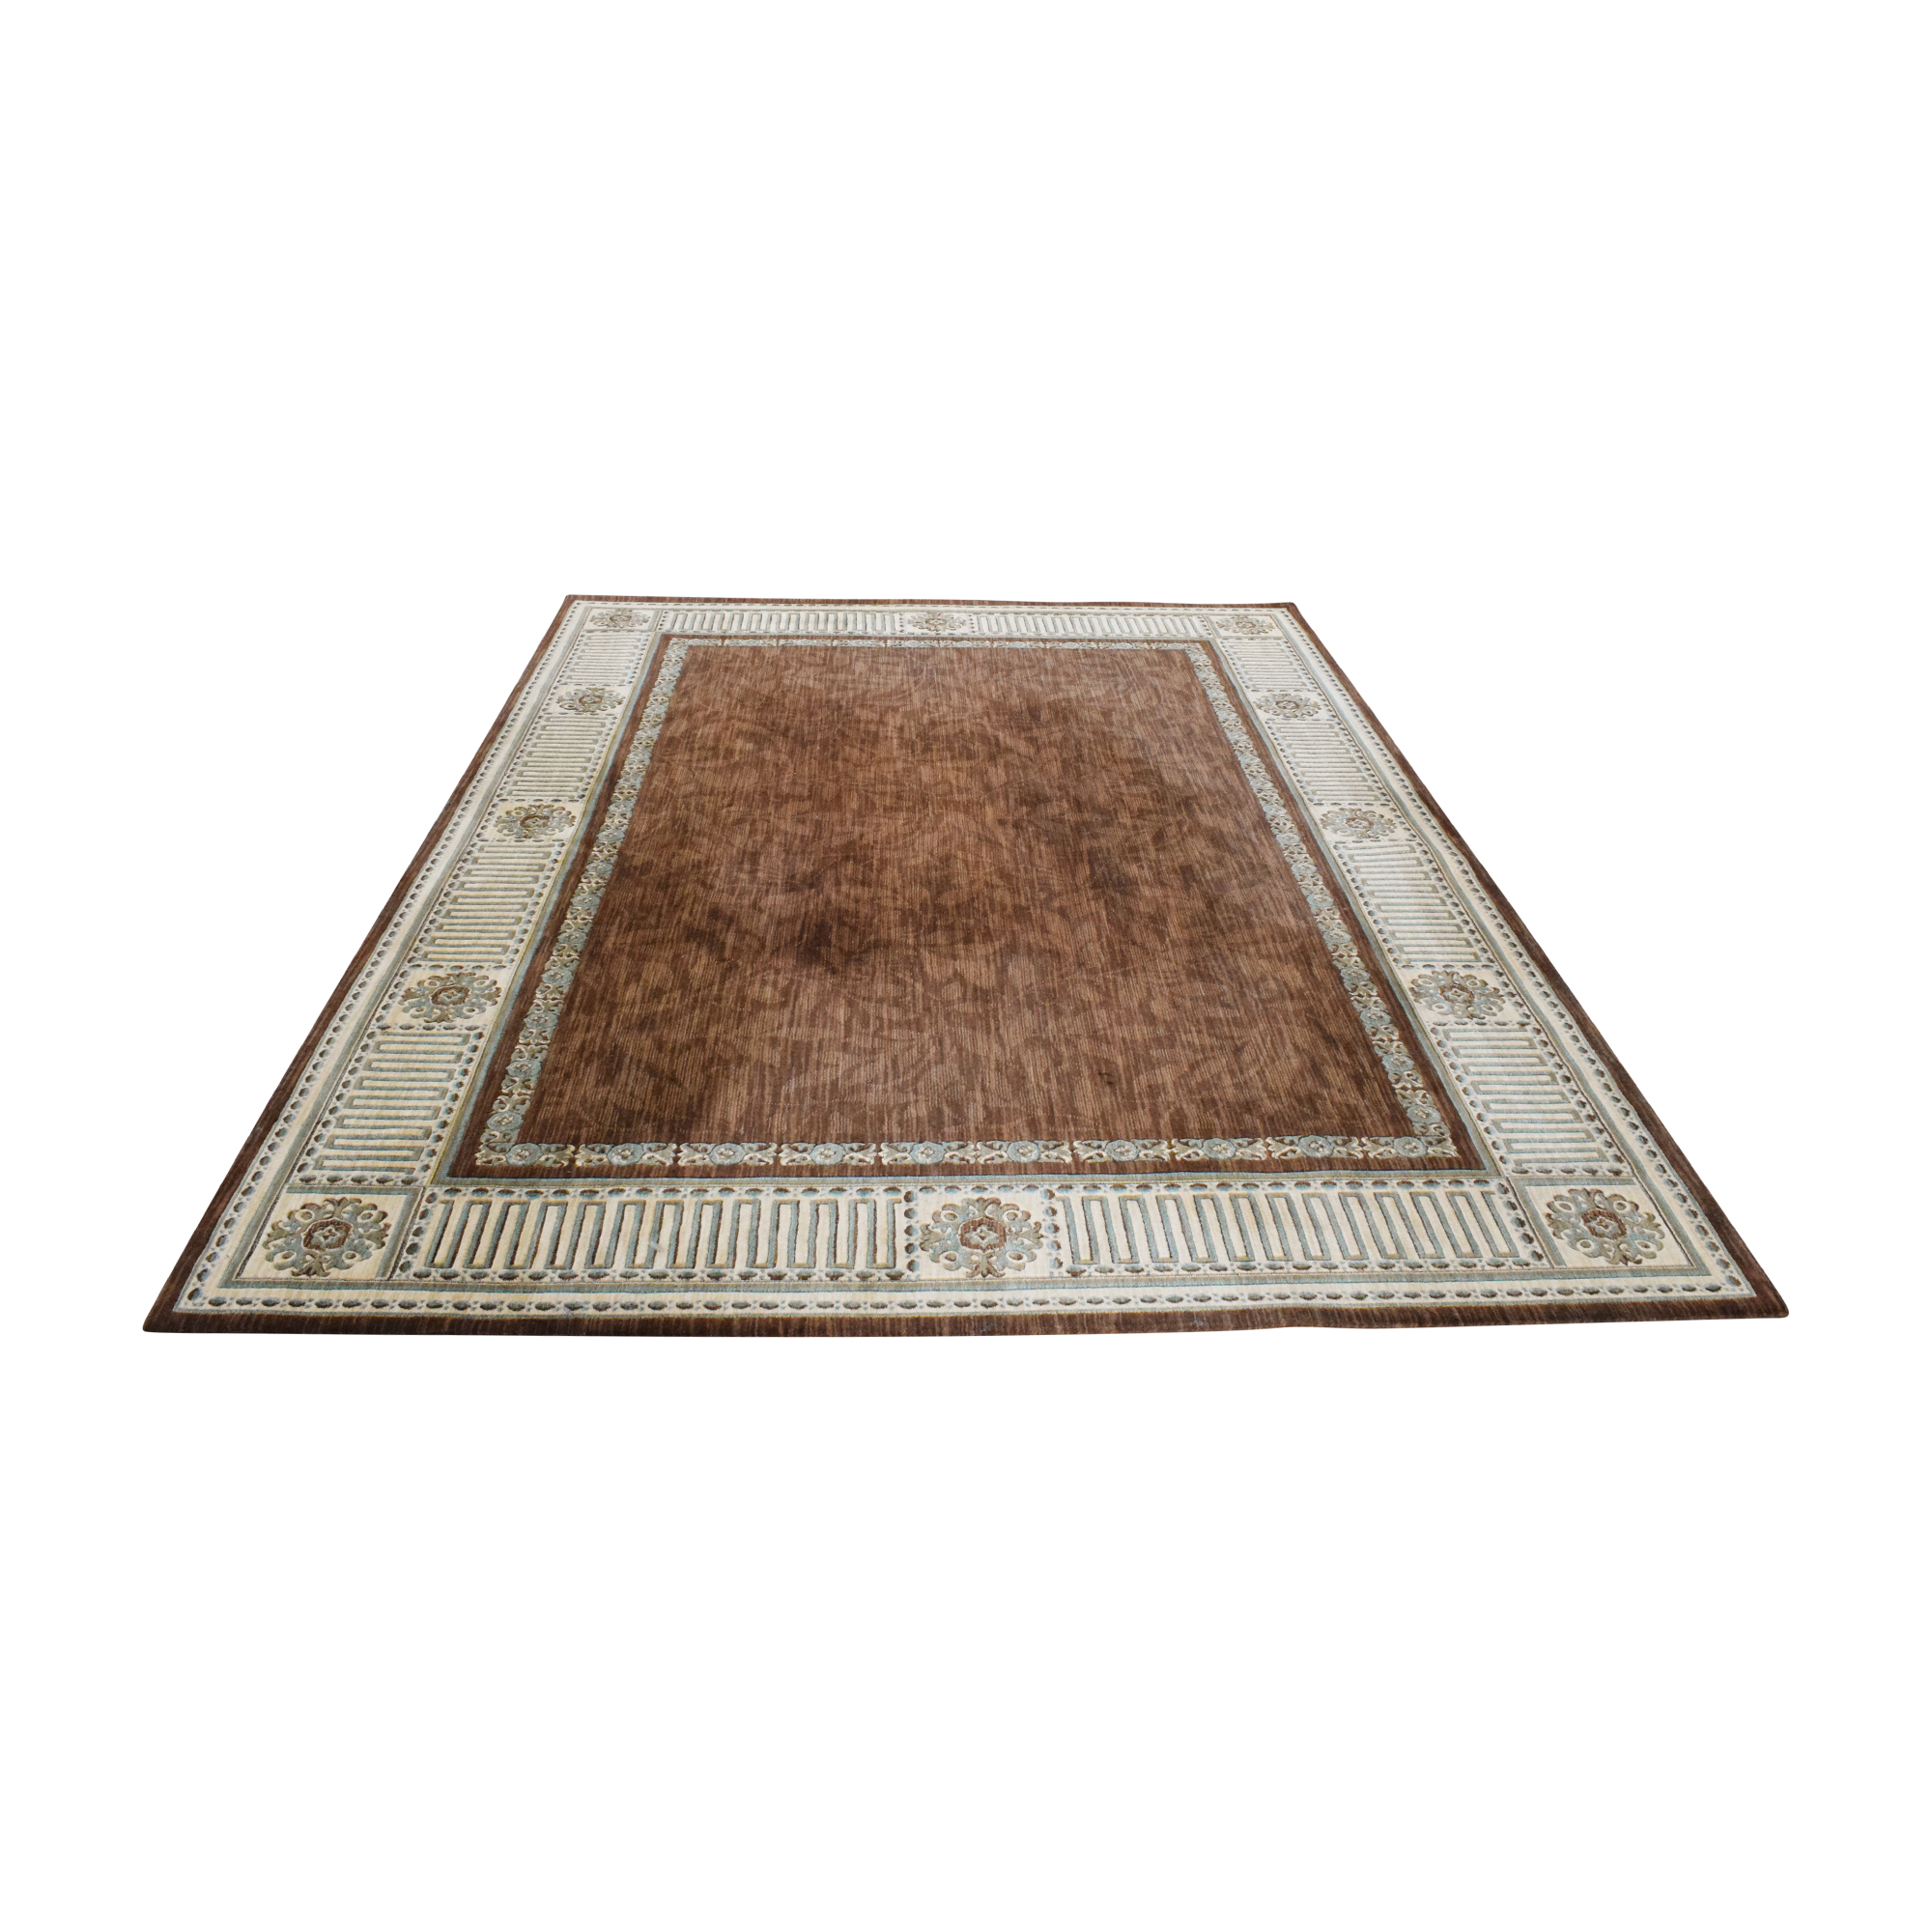 Mediterranean-Style Area Rug coupon